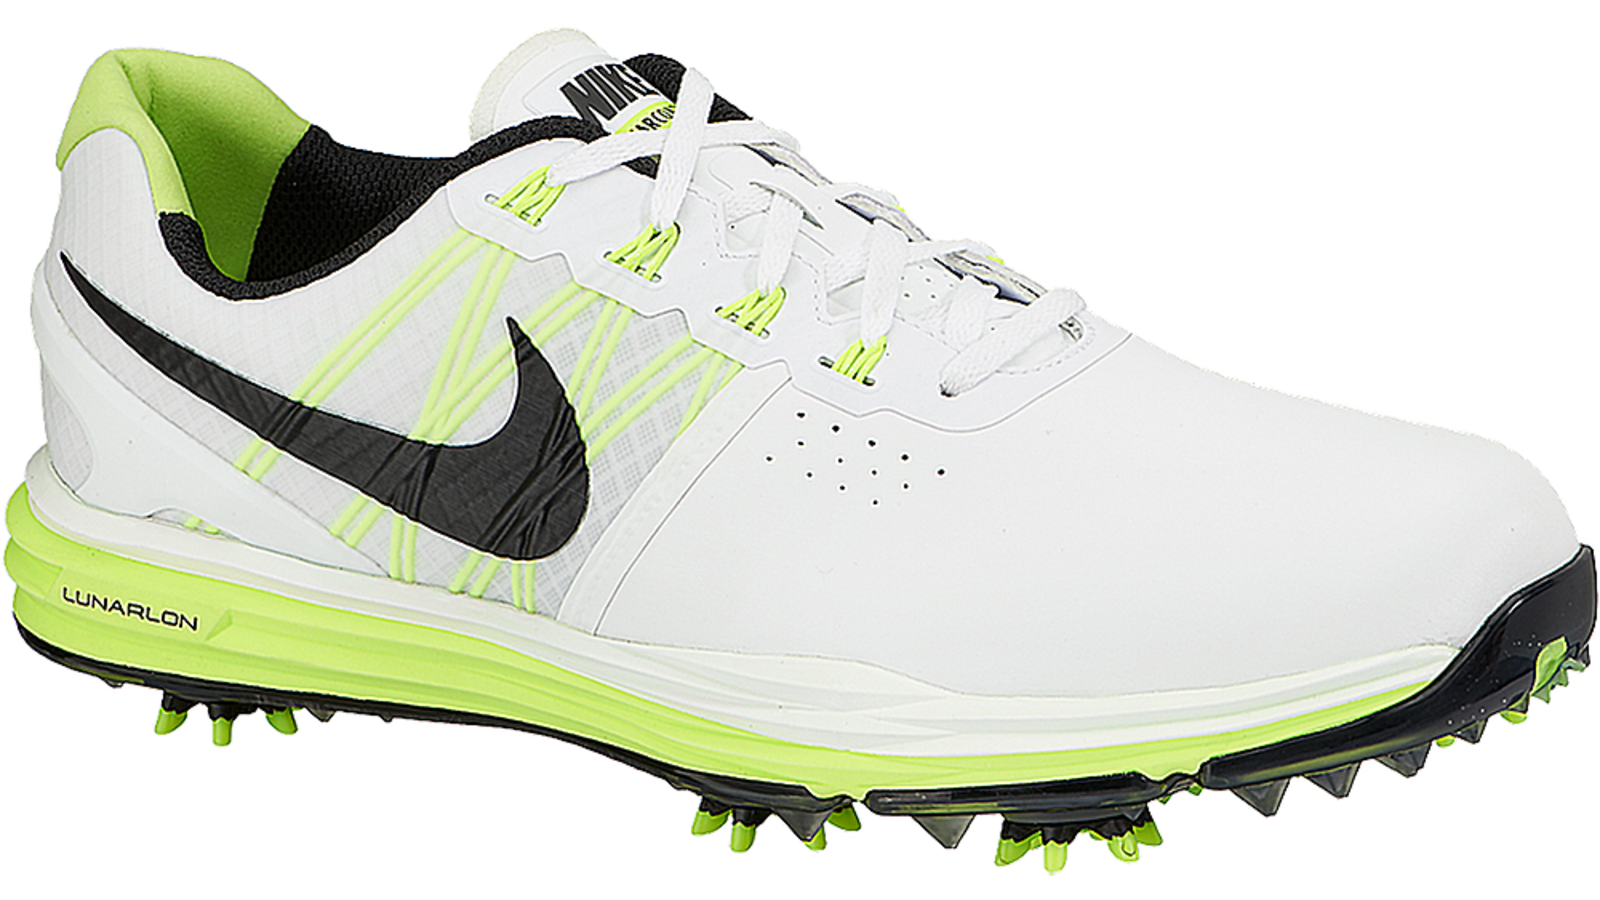 brand new d5389 8beea To create the newest iteration of the shoe, Nike designers incorporated  feedback from Rory McIlroy, the No. 1 golfer in the world, and developed  the ...